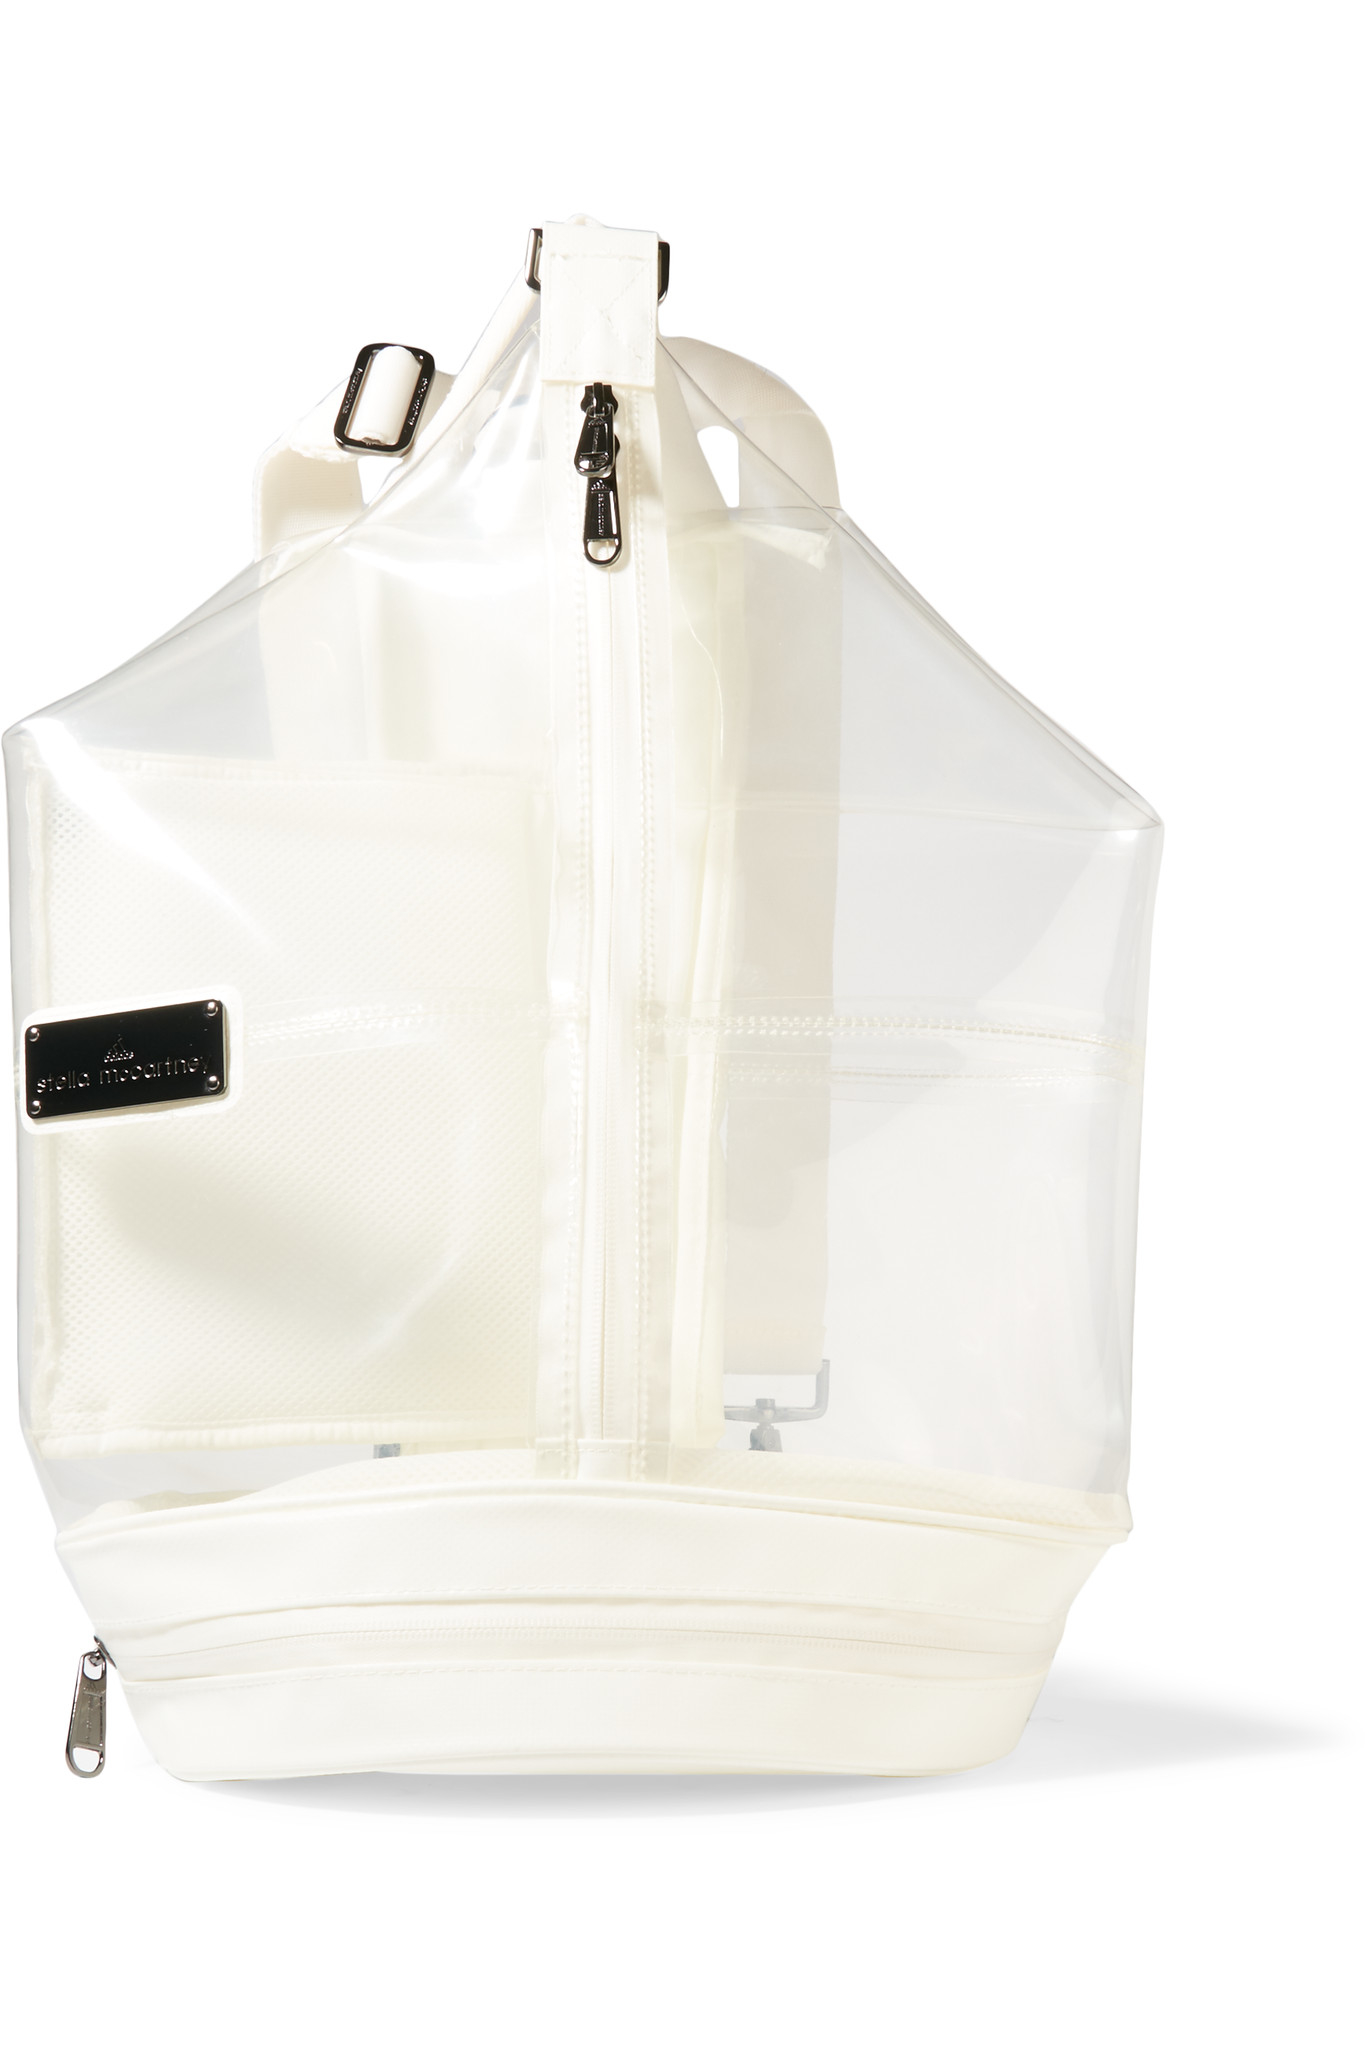 f0f5c0a288 Adidas By Stella Mccartney Pvc And Shell Backpack in White - Lyst